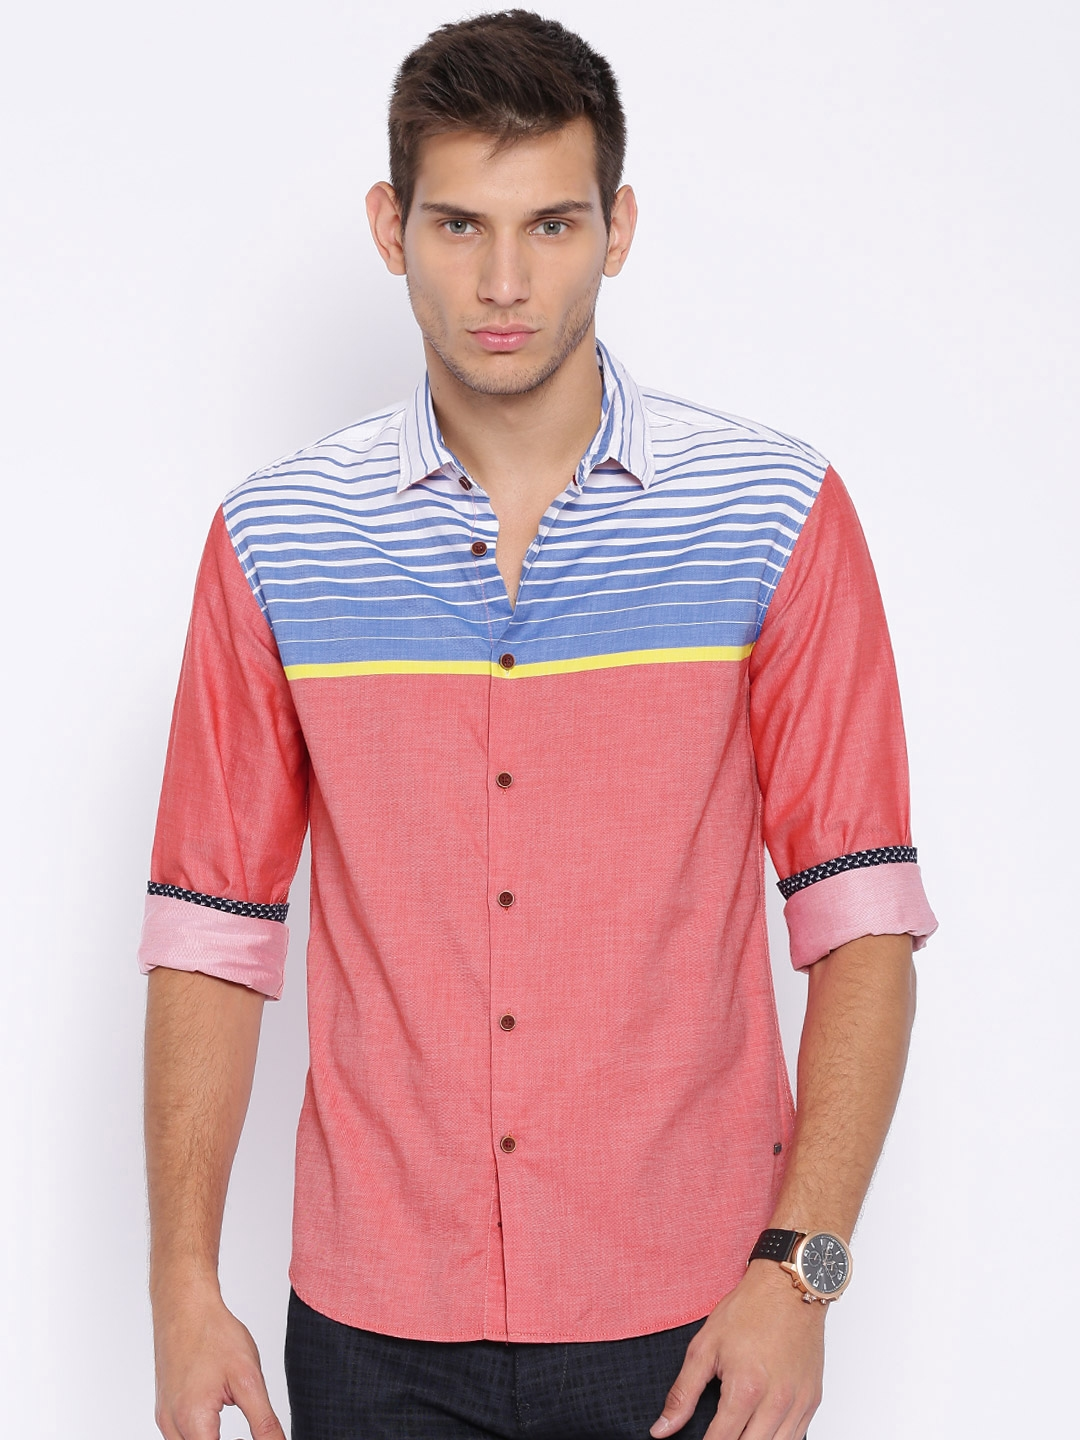 Locomotive Coral Red   Blue Striped Casual Shirt